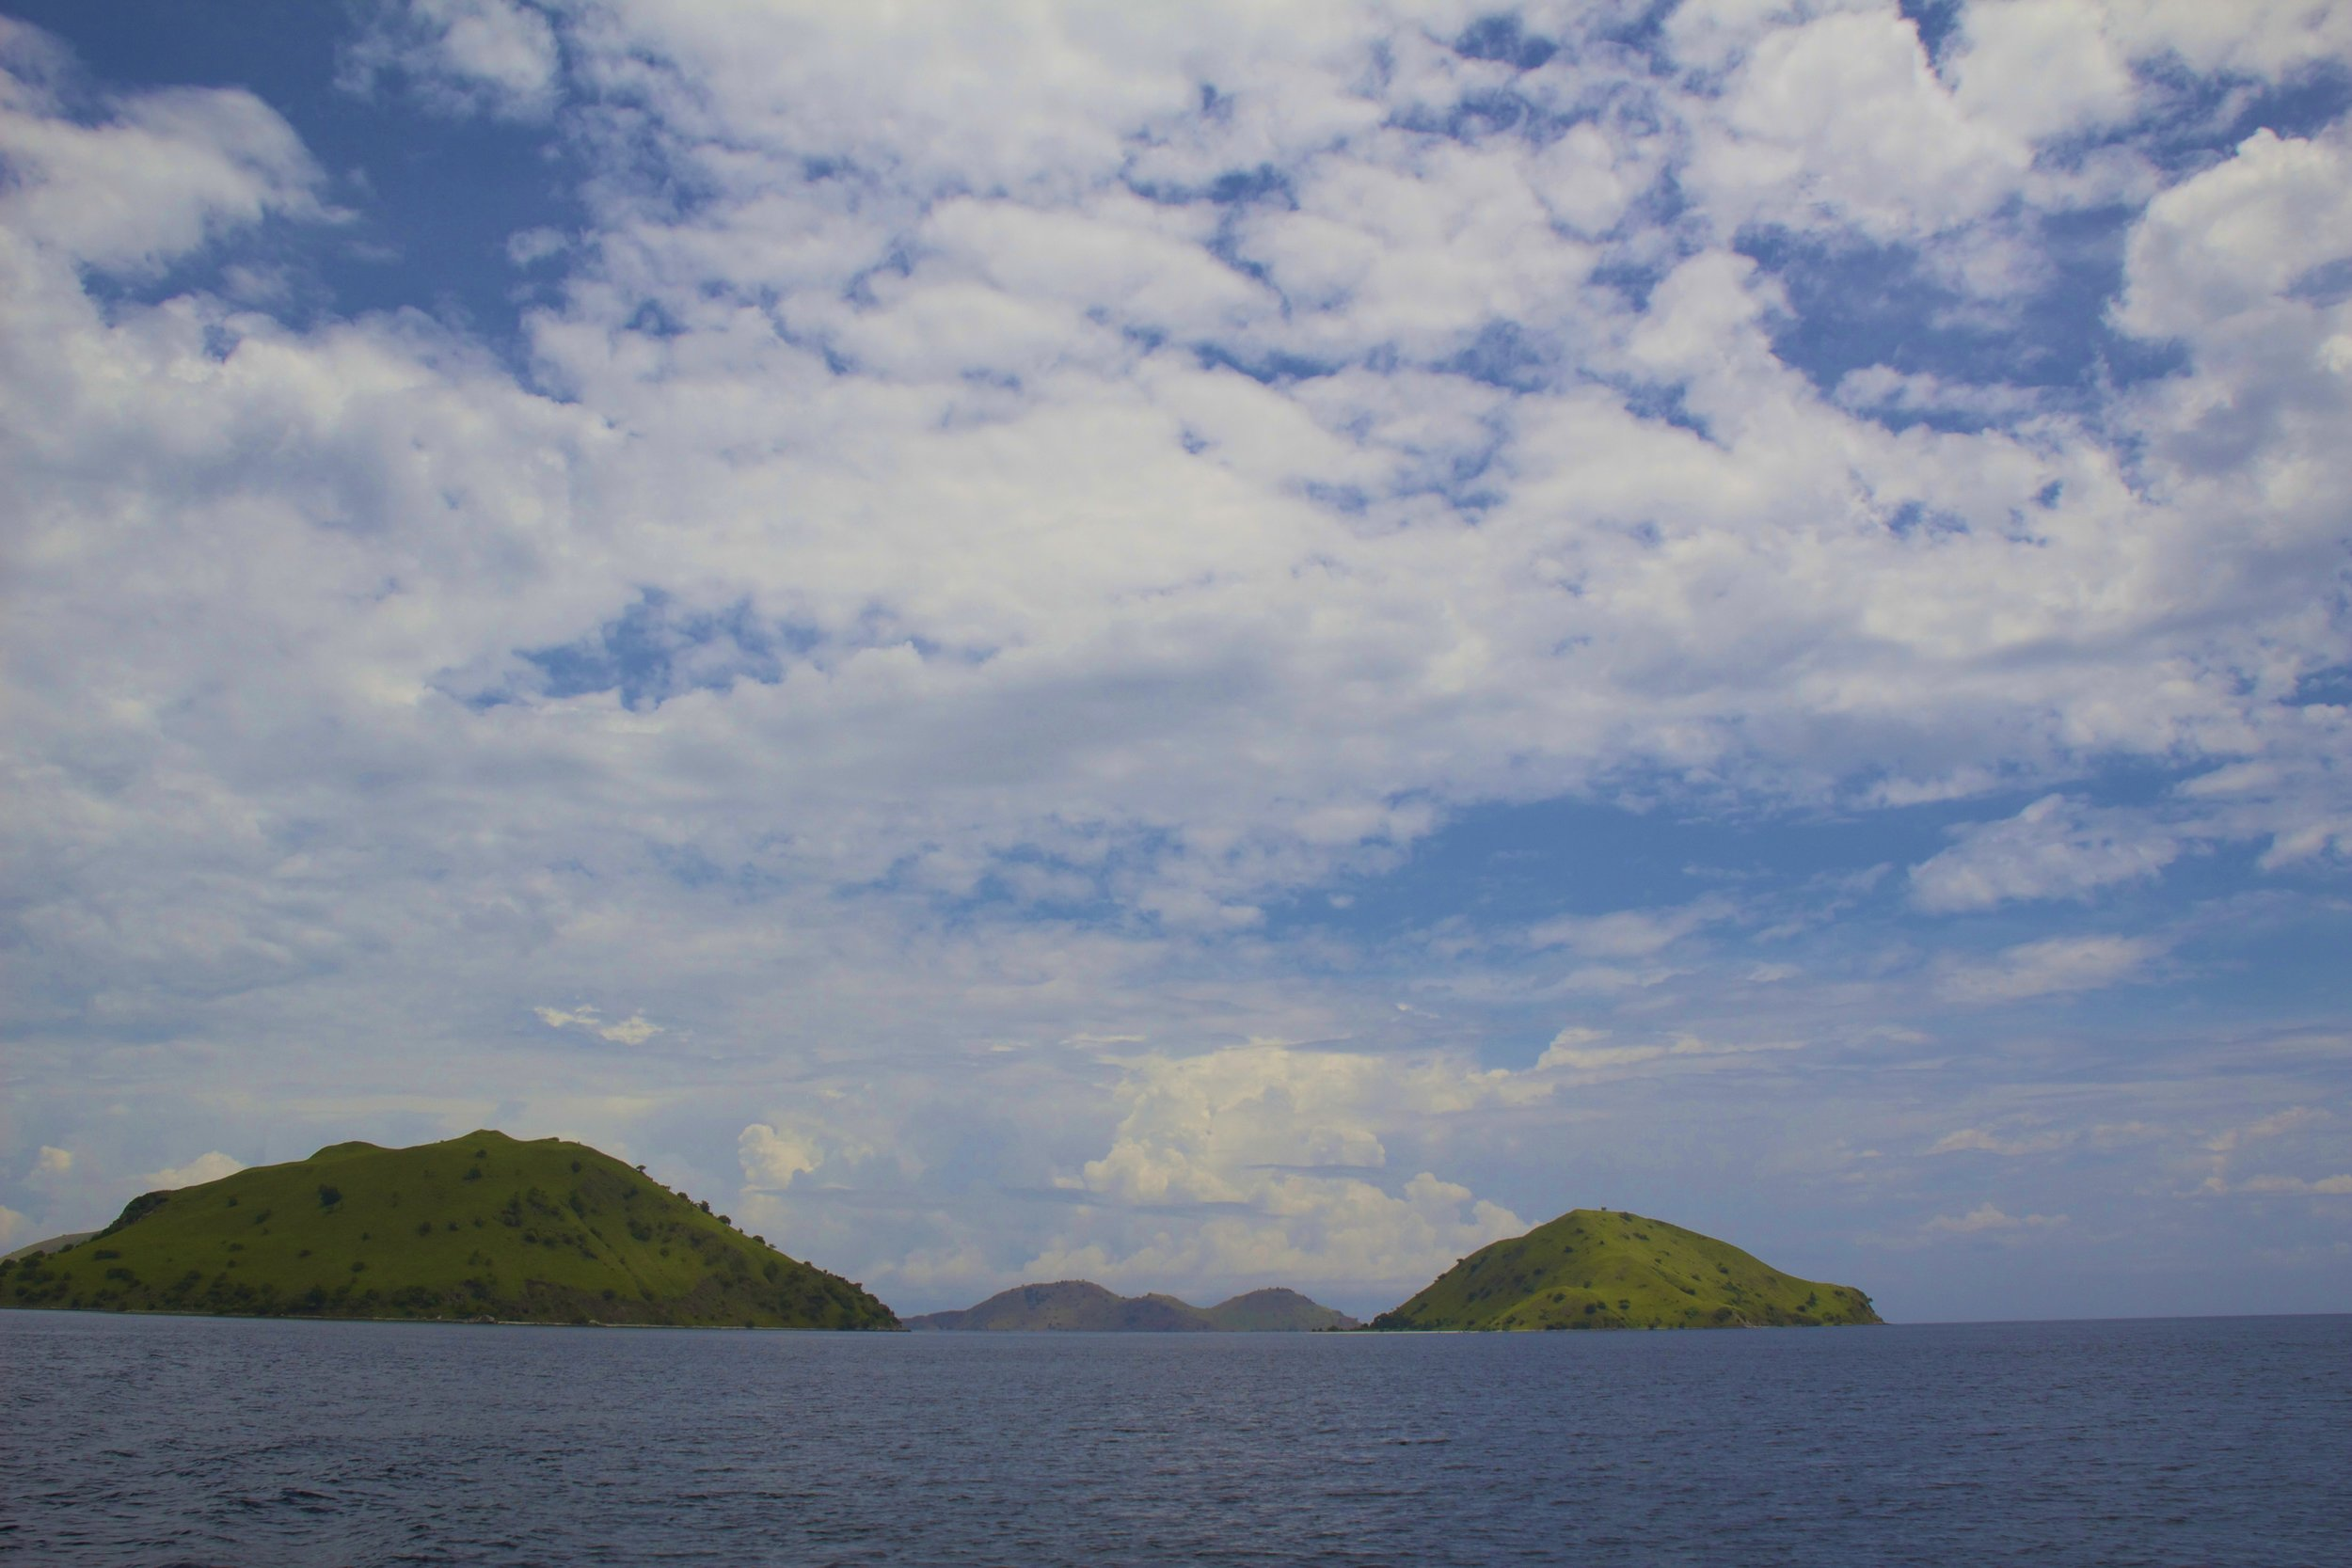 komodo islands flores indonesia 2.jpg